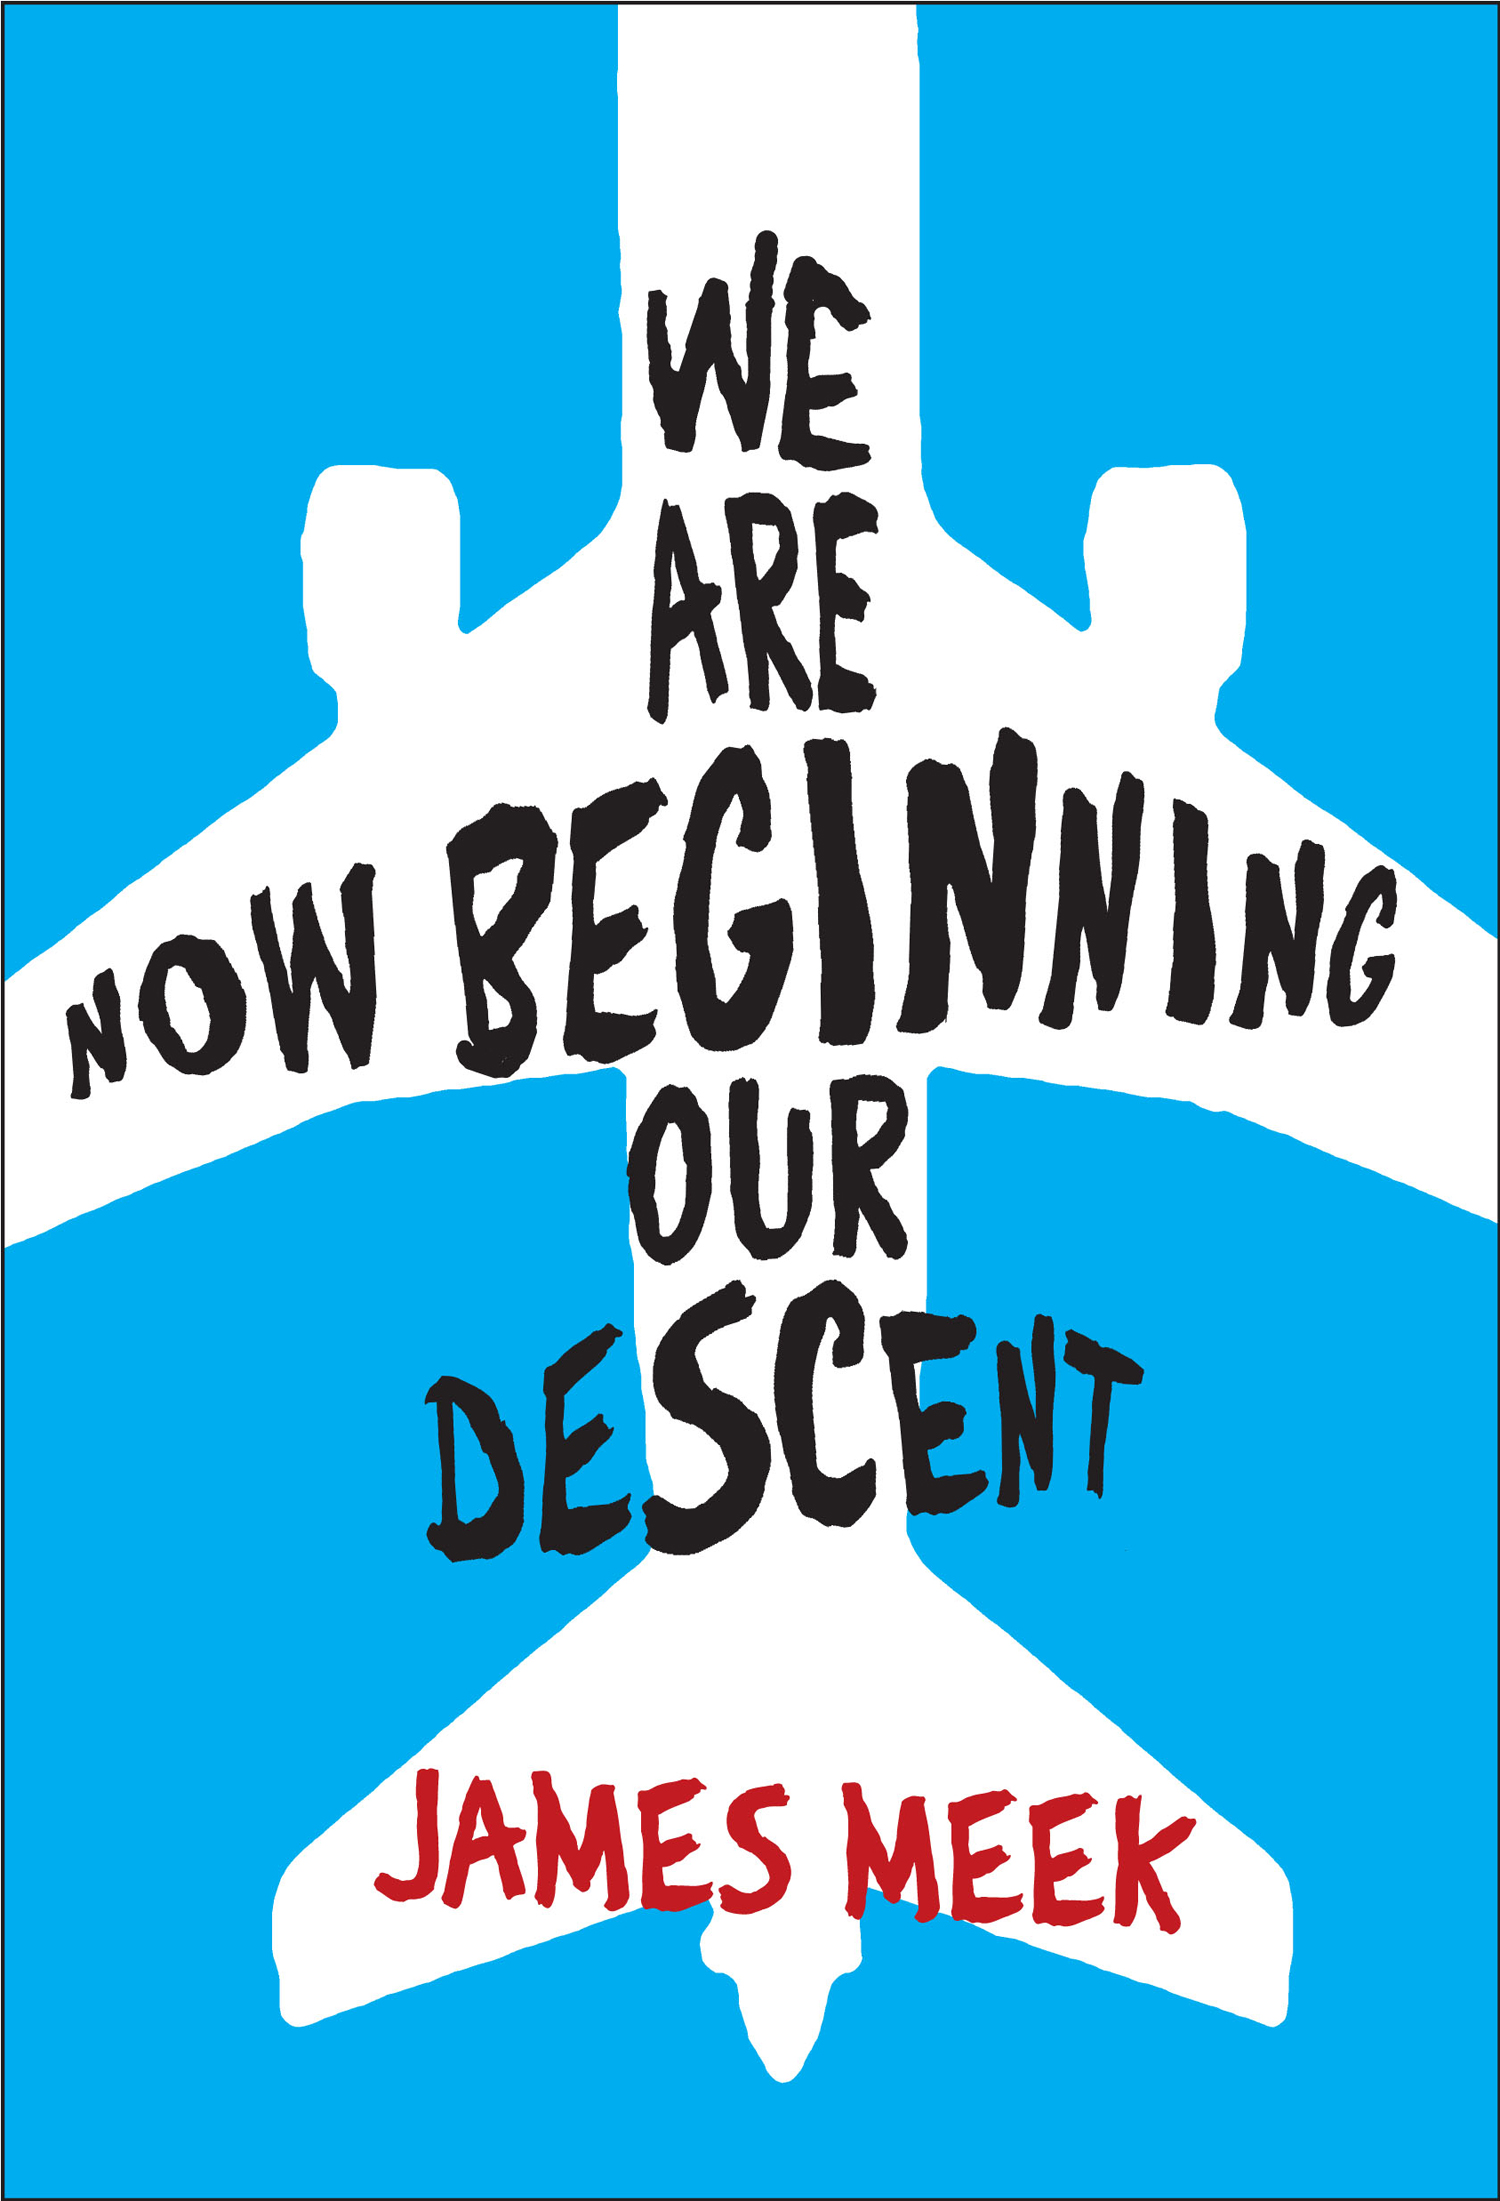 WE-ARE-NOW-BEGINNING-OUR-DESCENT-comp2-ss6.jpg